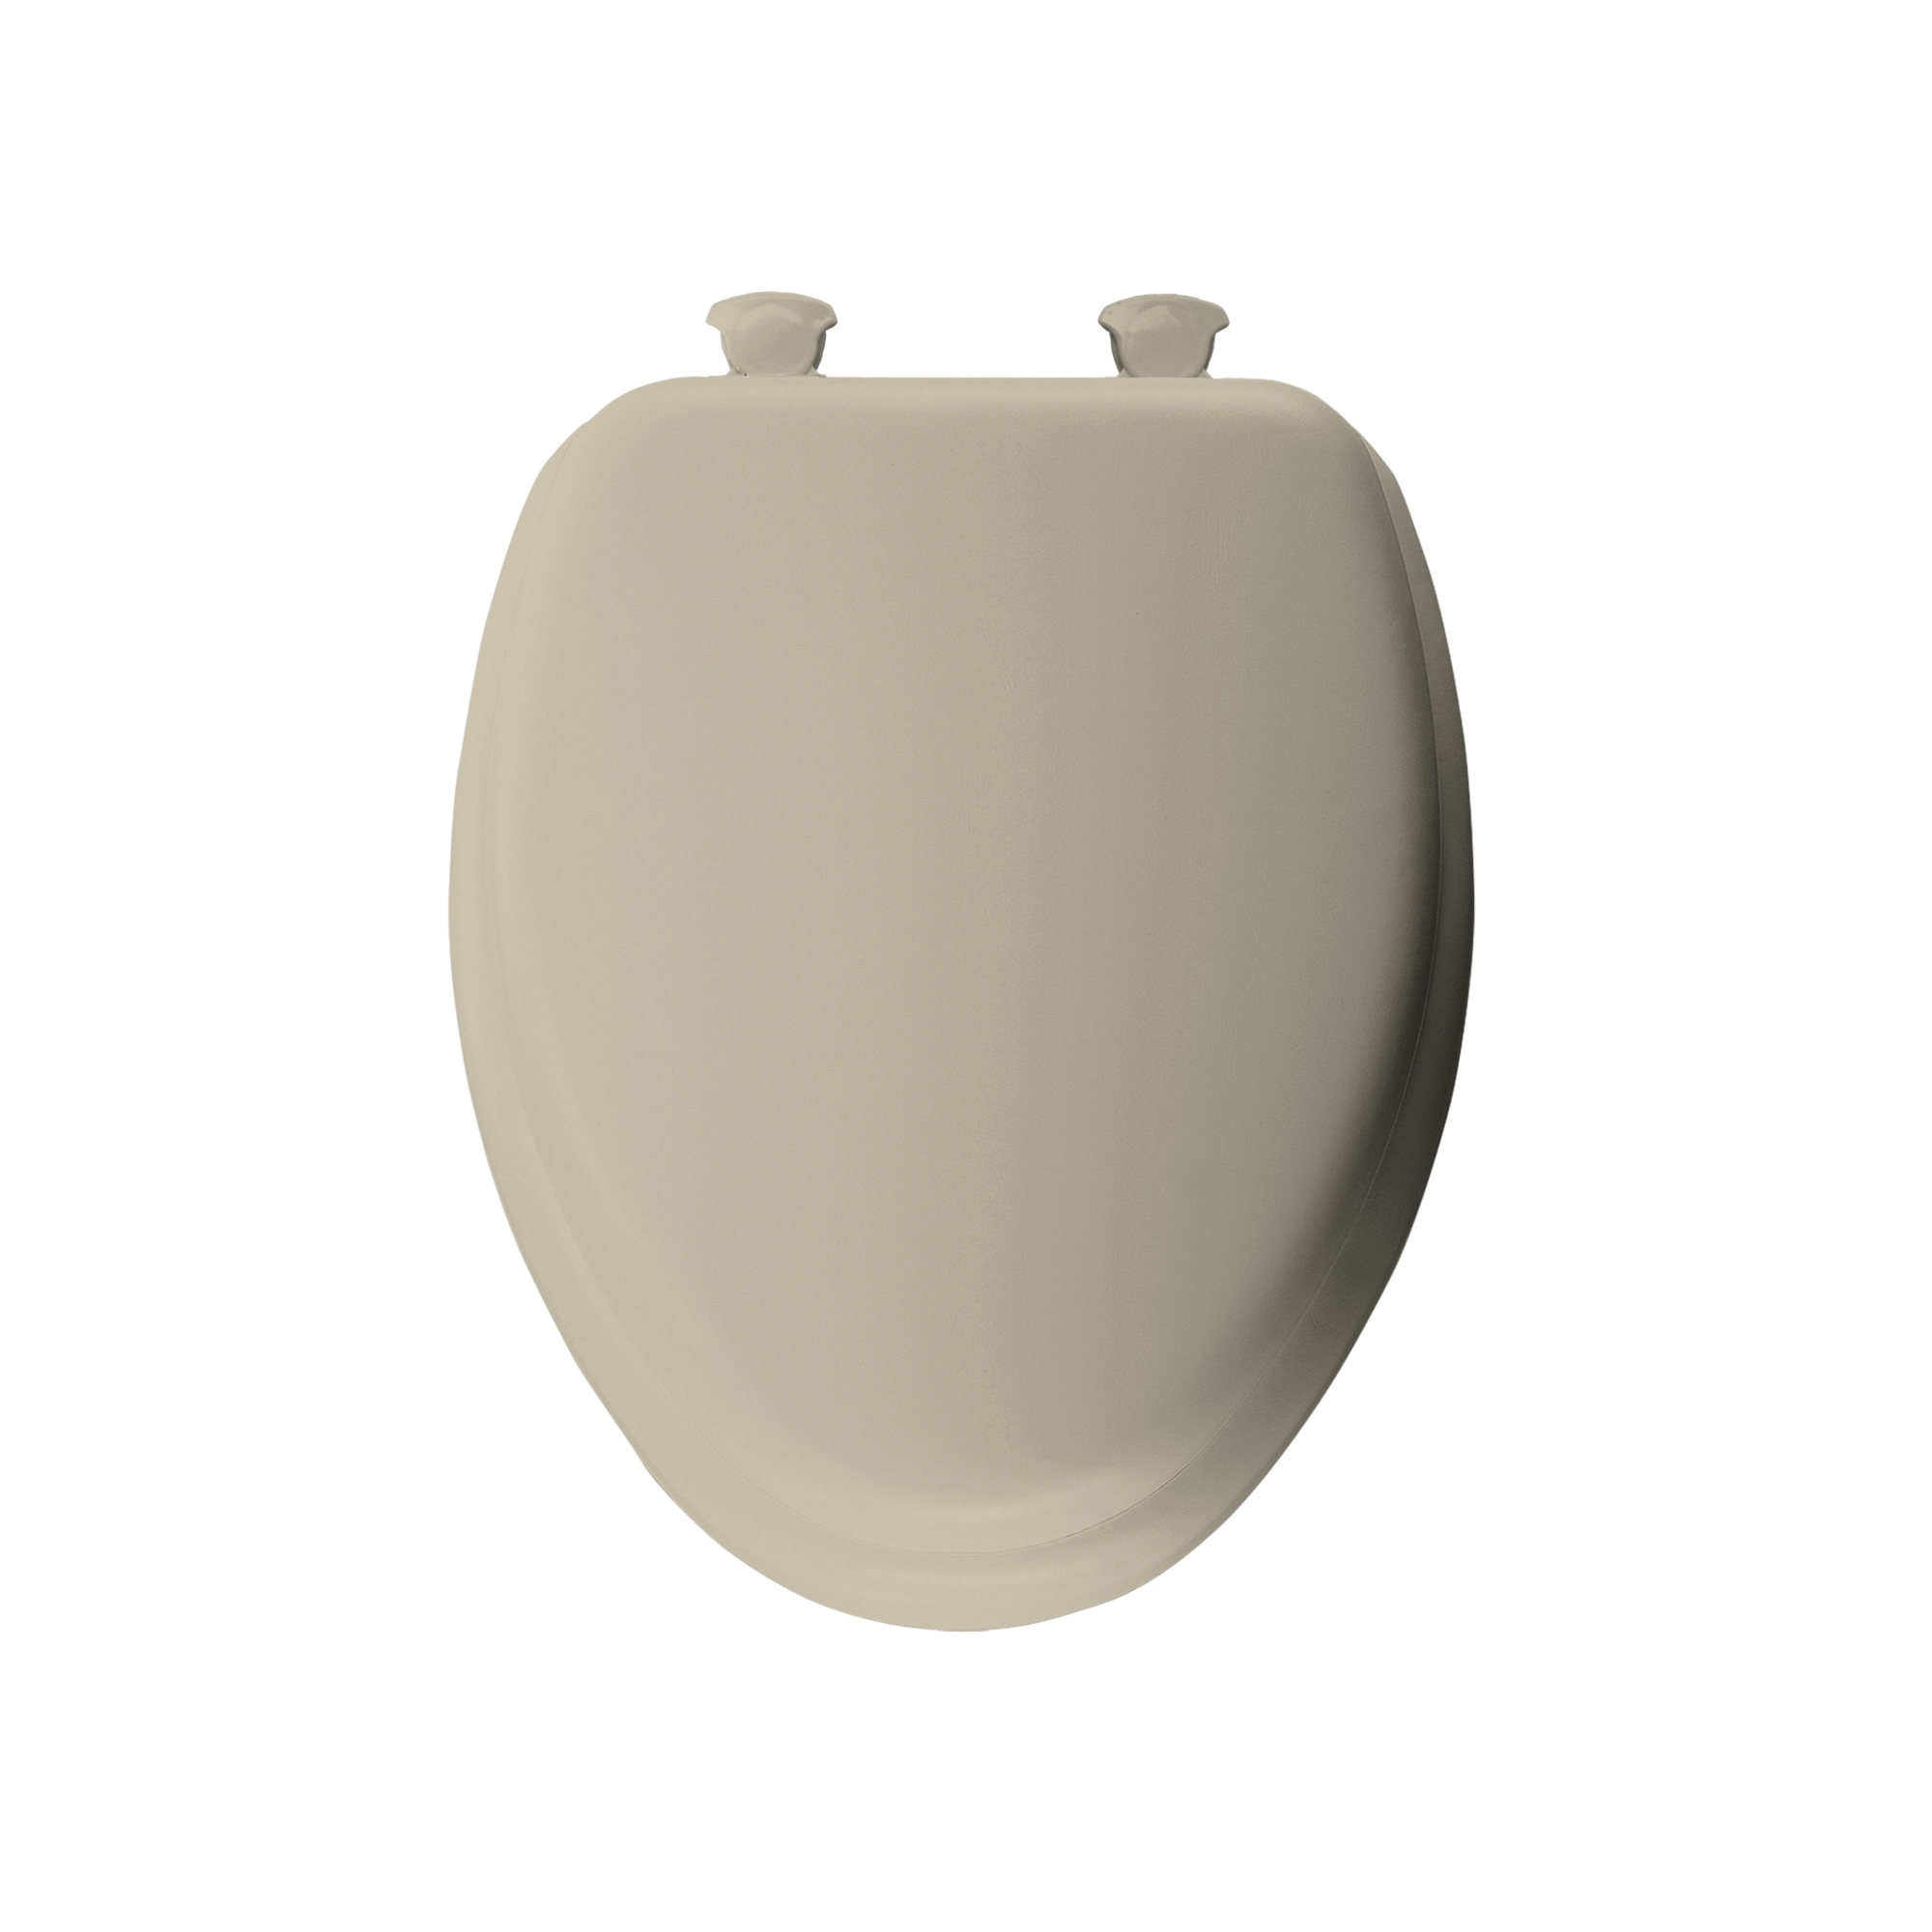 Mayfair® 113EC 006 Toilet Seat, Elongated Bowl, Closed Front, Wood, Bone, Domestic